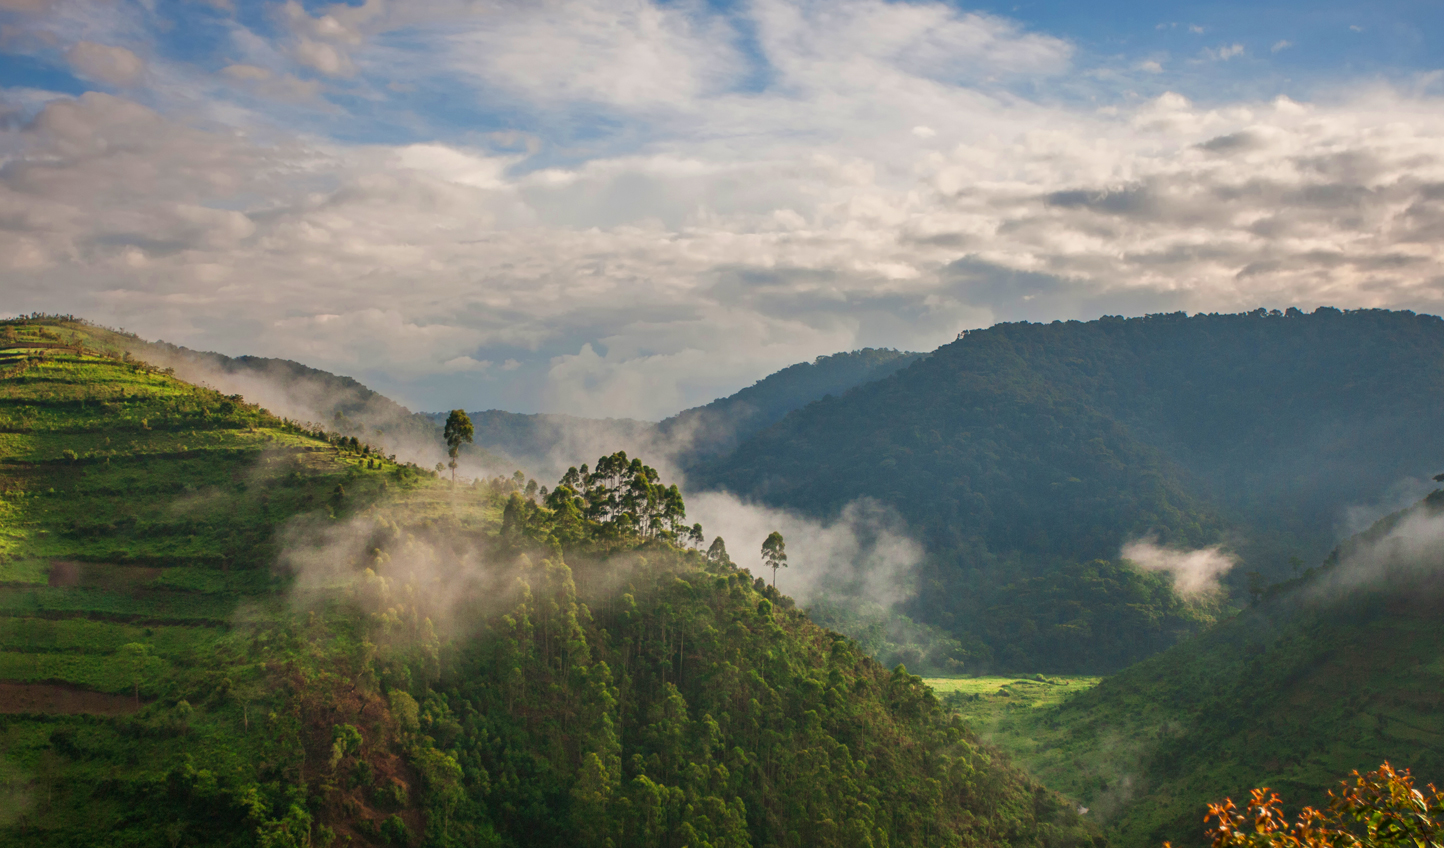 Escape to the swirling mists of Bwindi